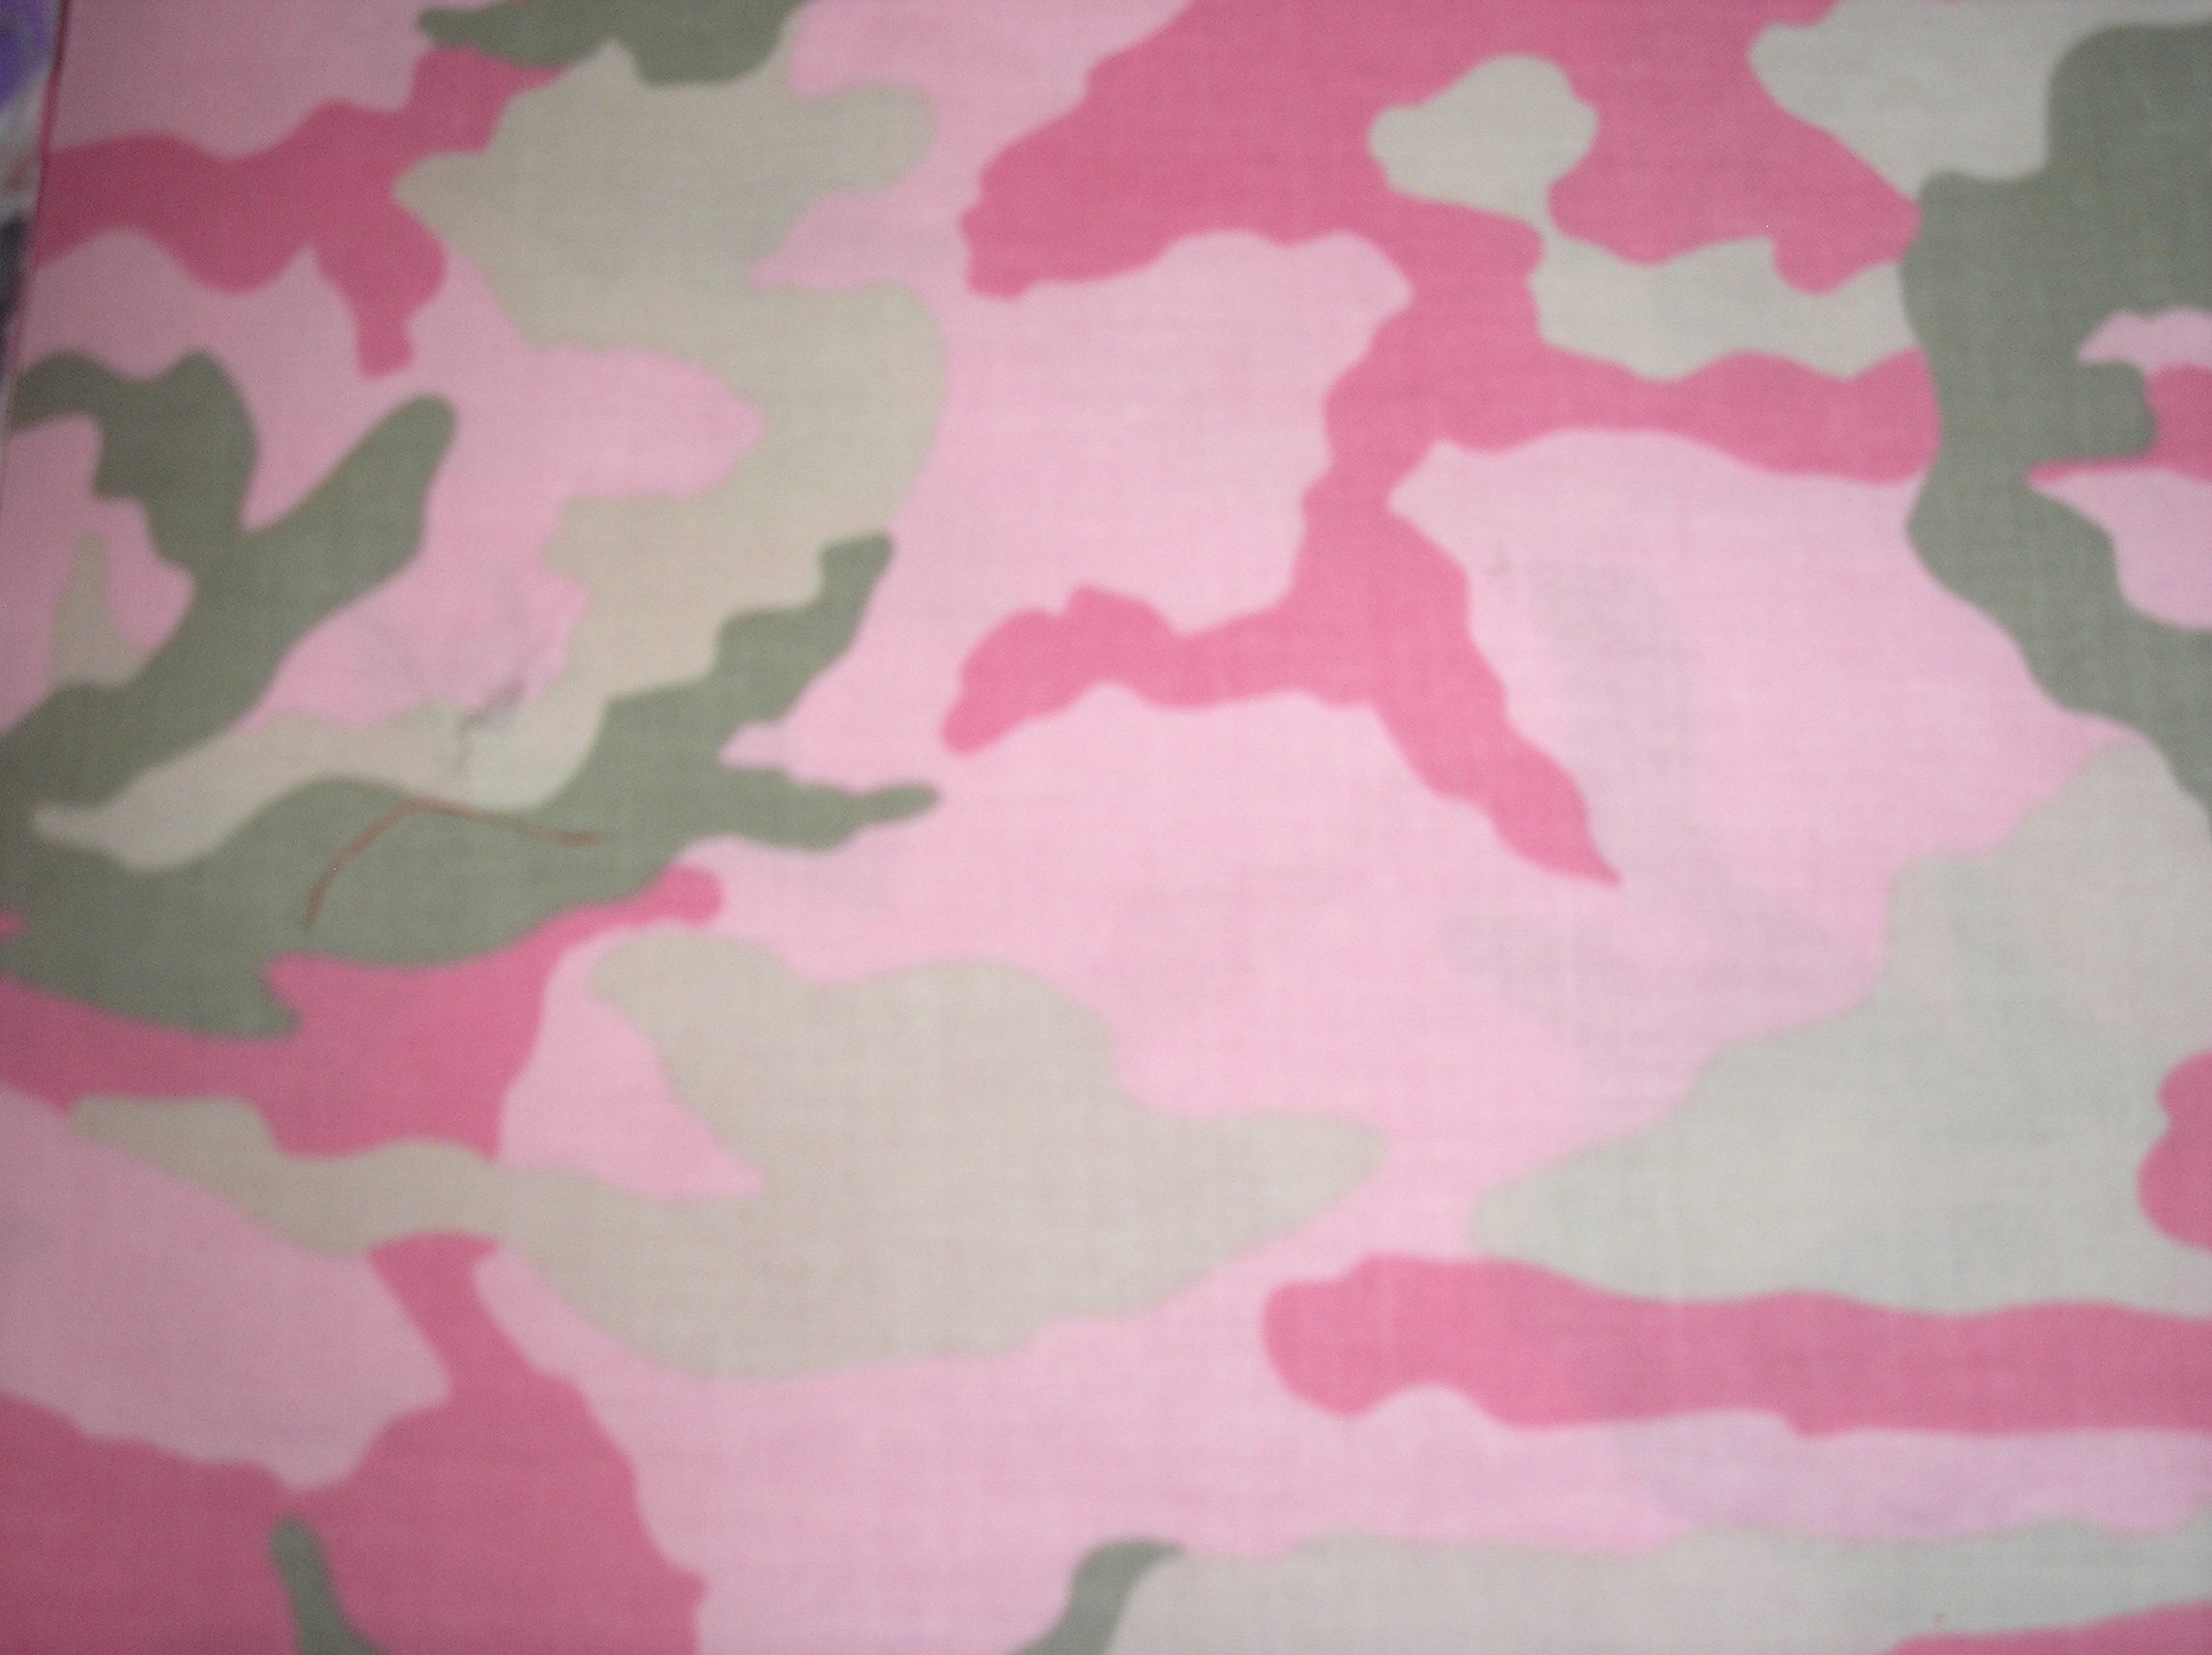 Camouflage designs in many colors